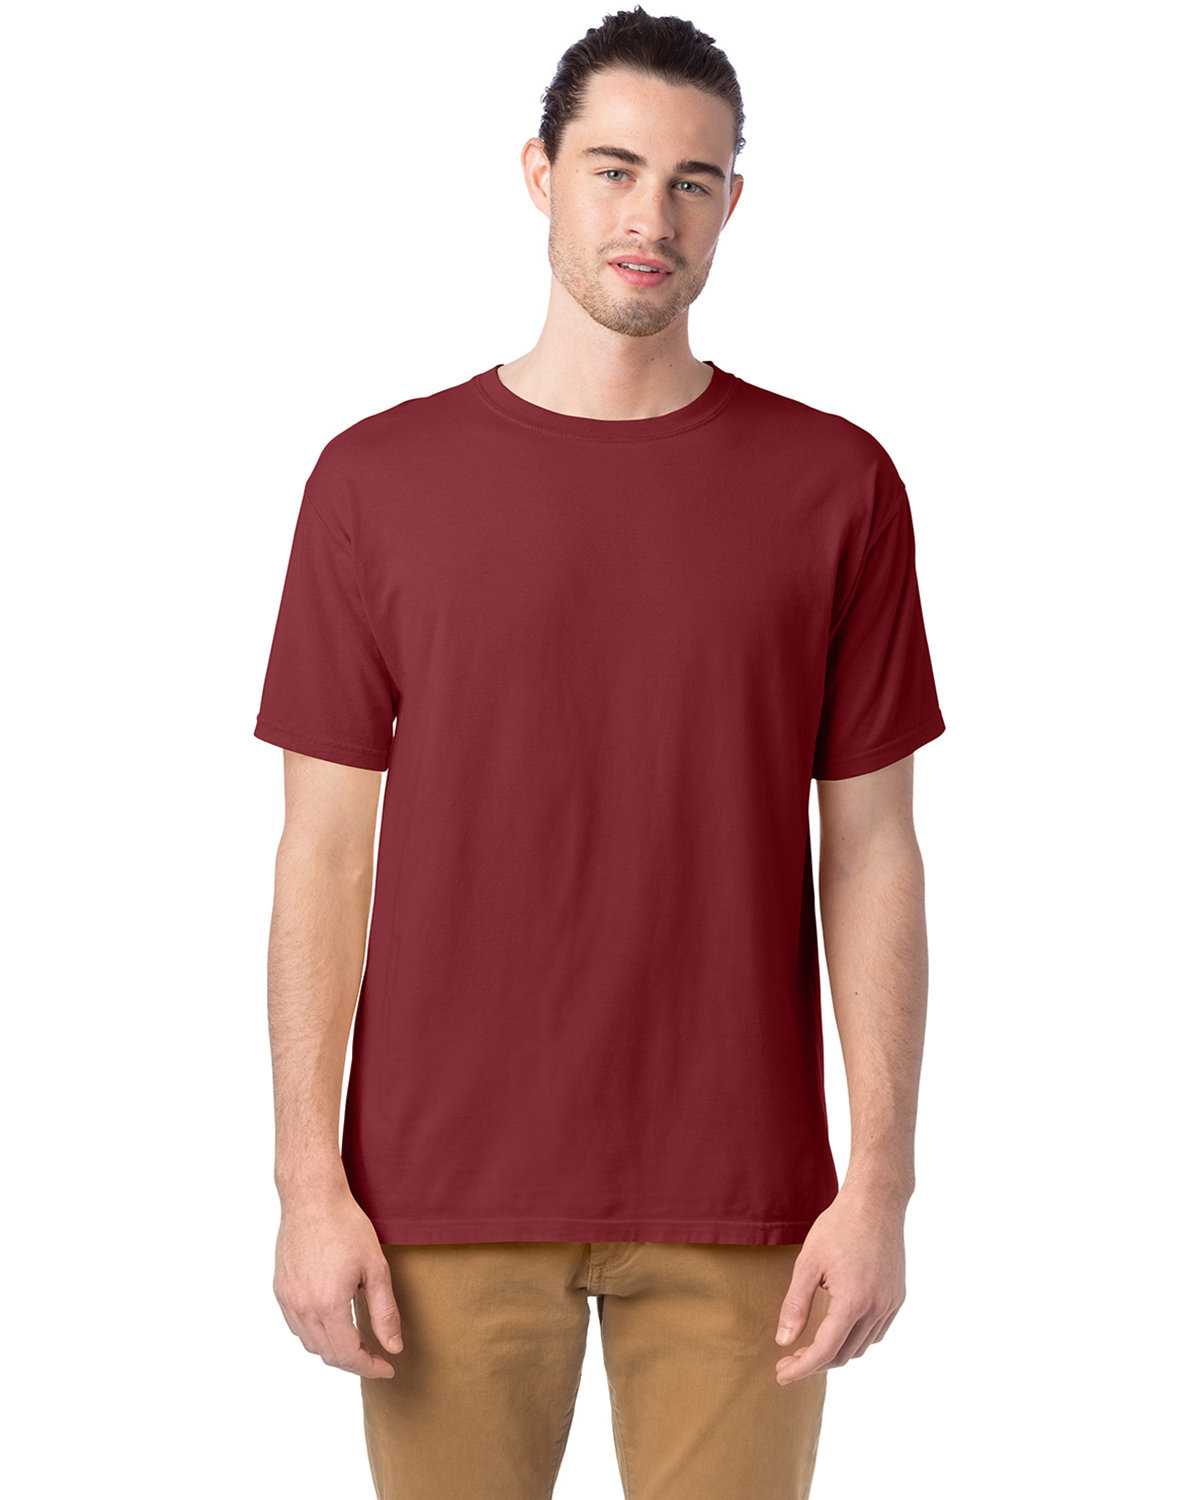 ComfortWash by Hanes Men's 5.5 oz., 100% Ringspun Cotton Garment-Dyed T-Shirt CAYENNE